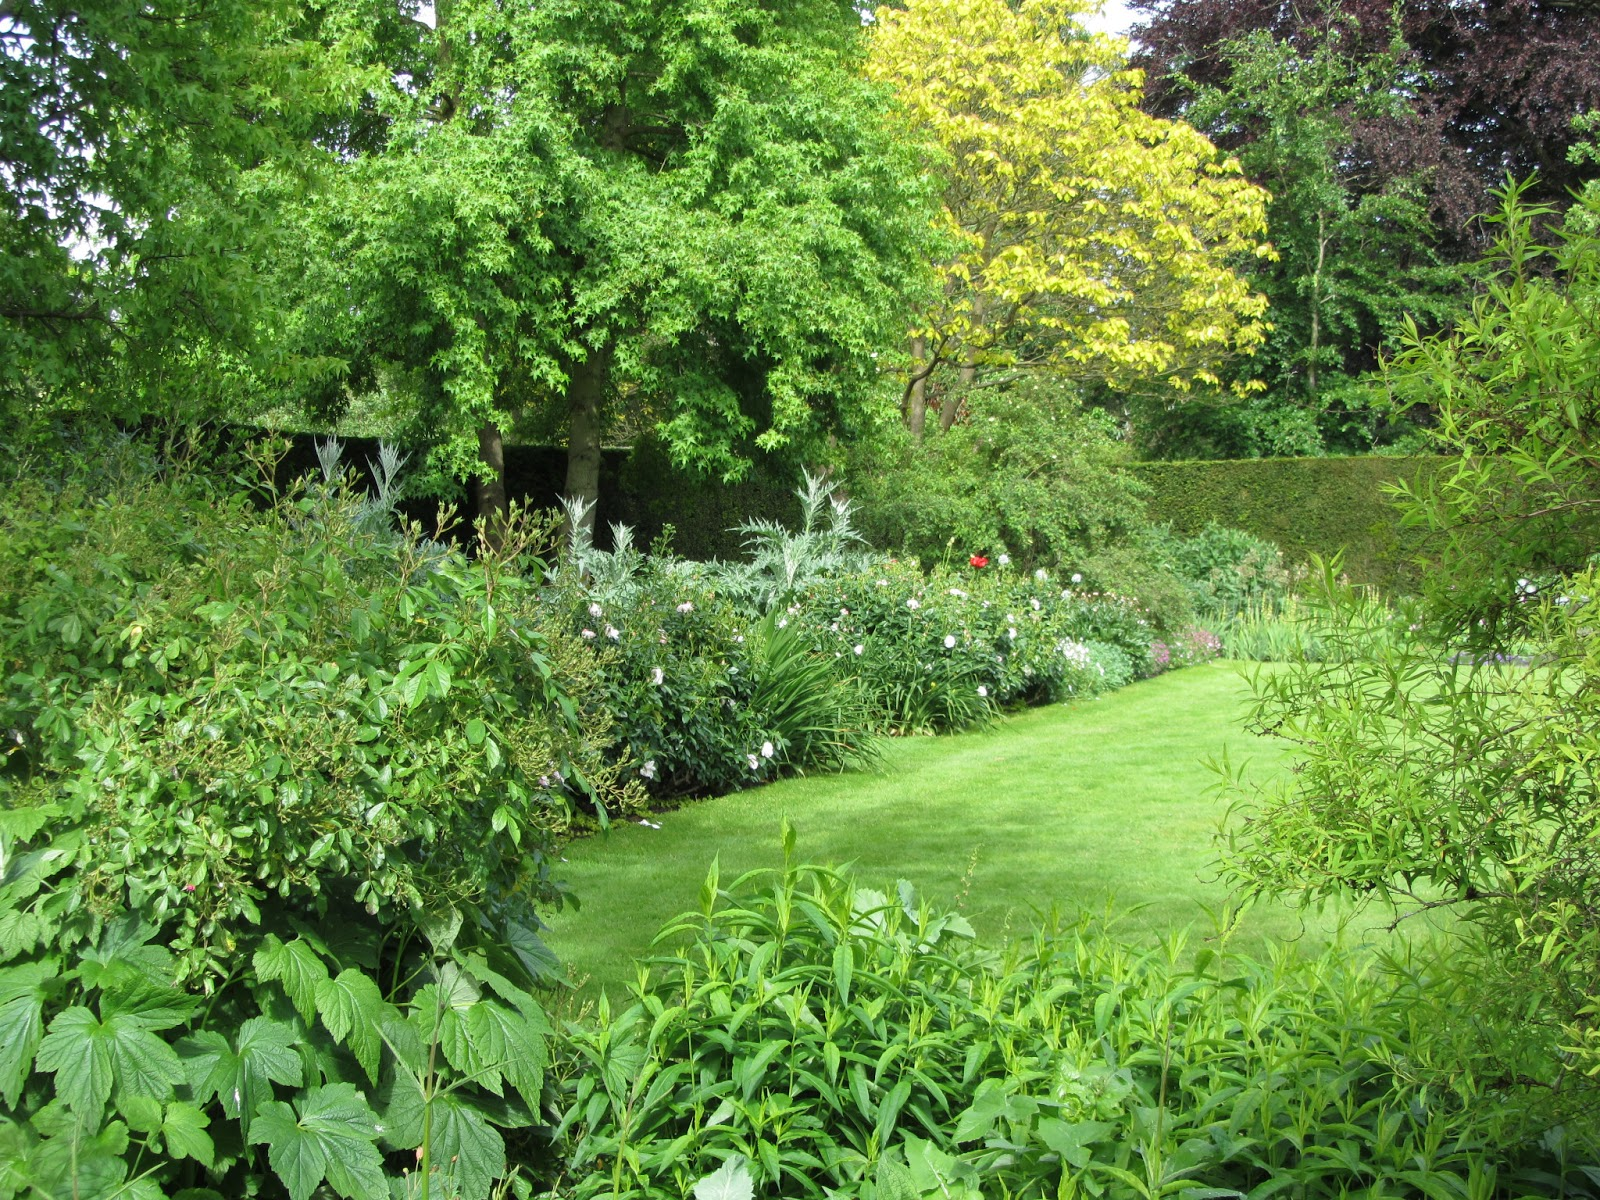 Ham photos rear garden at ormeley lodge - The Hedge Lined Corridors Make Exploring The Garden A Lot Of Fun And There Is Still A Sense Of Mystery When Going Round For A Second Time With Some